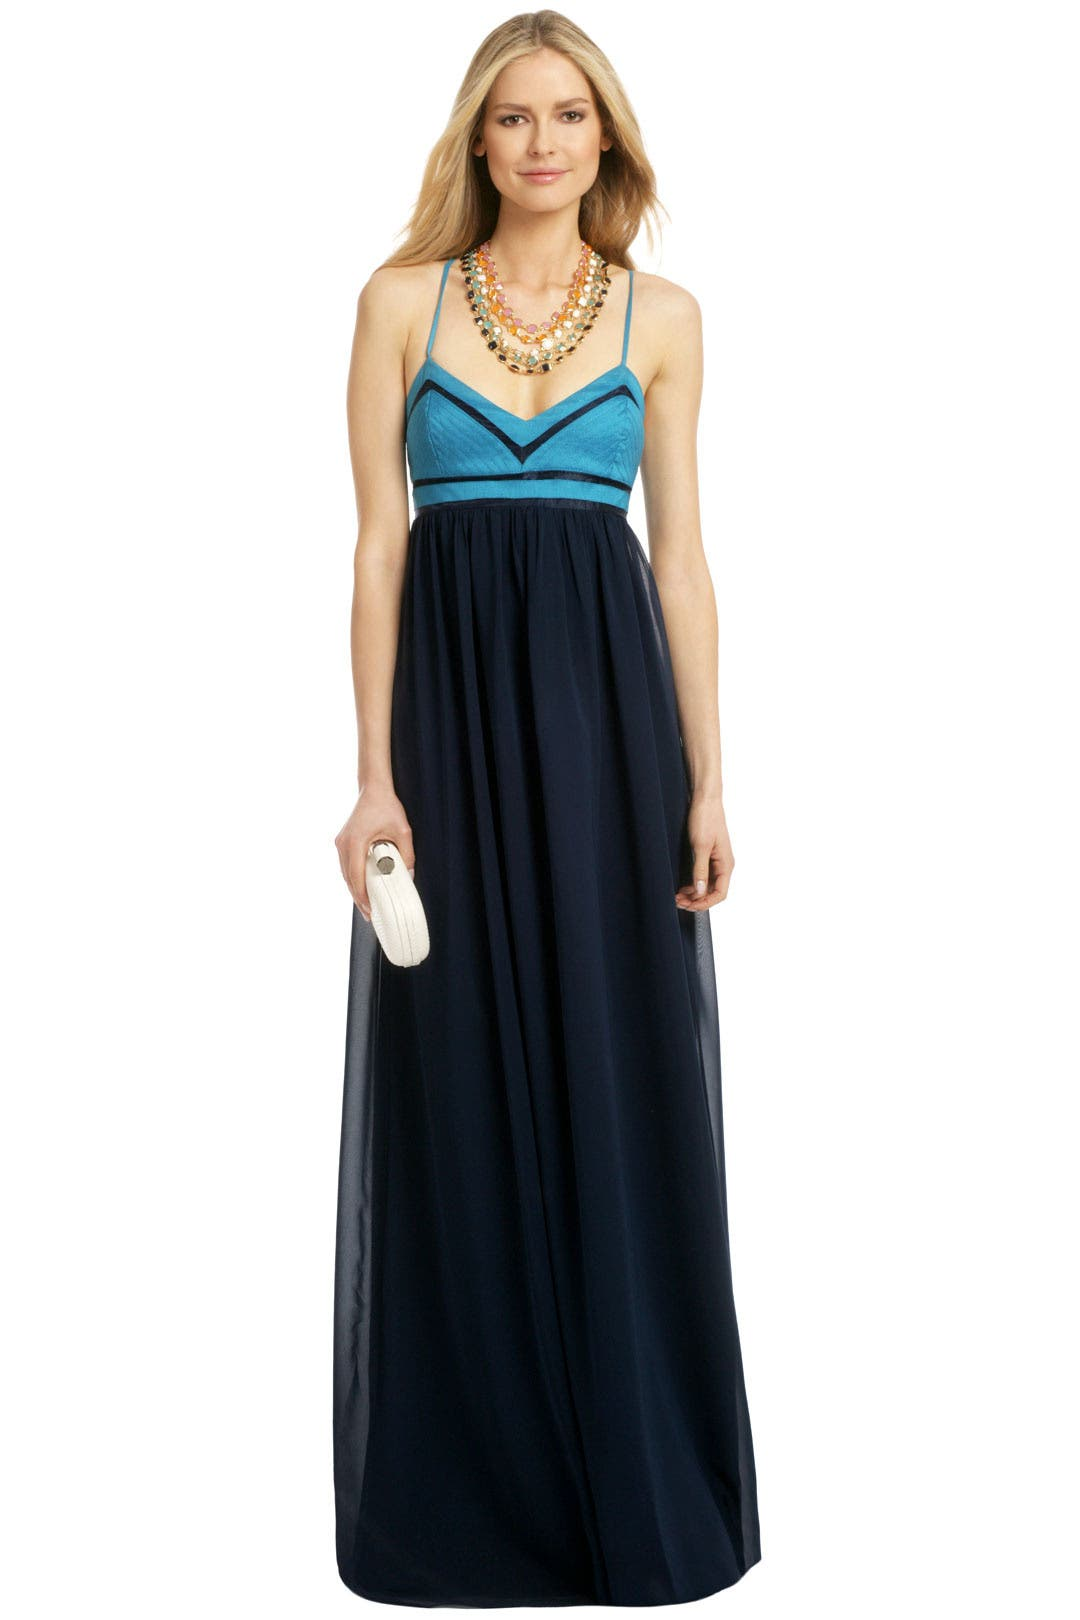 Hang Ten Maxi by Mark & James by Badgley Mischka